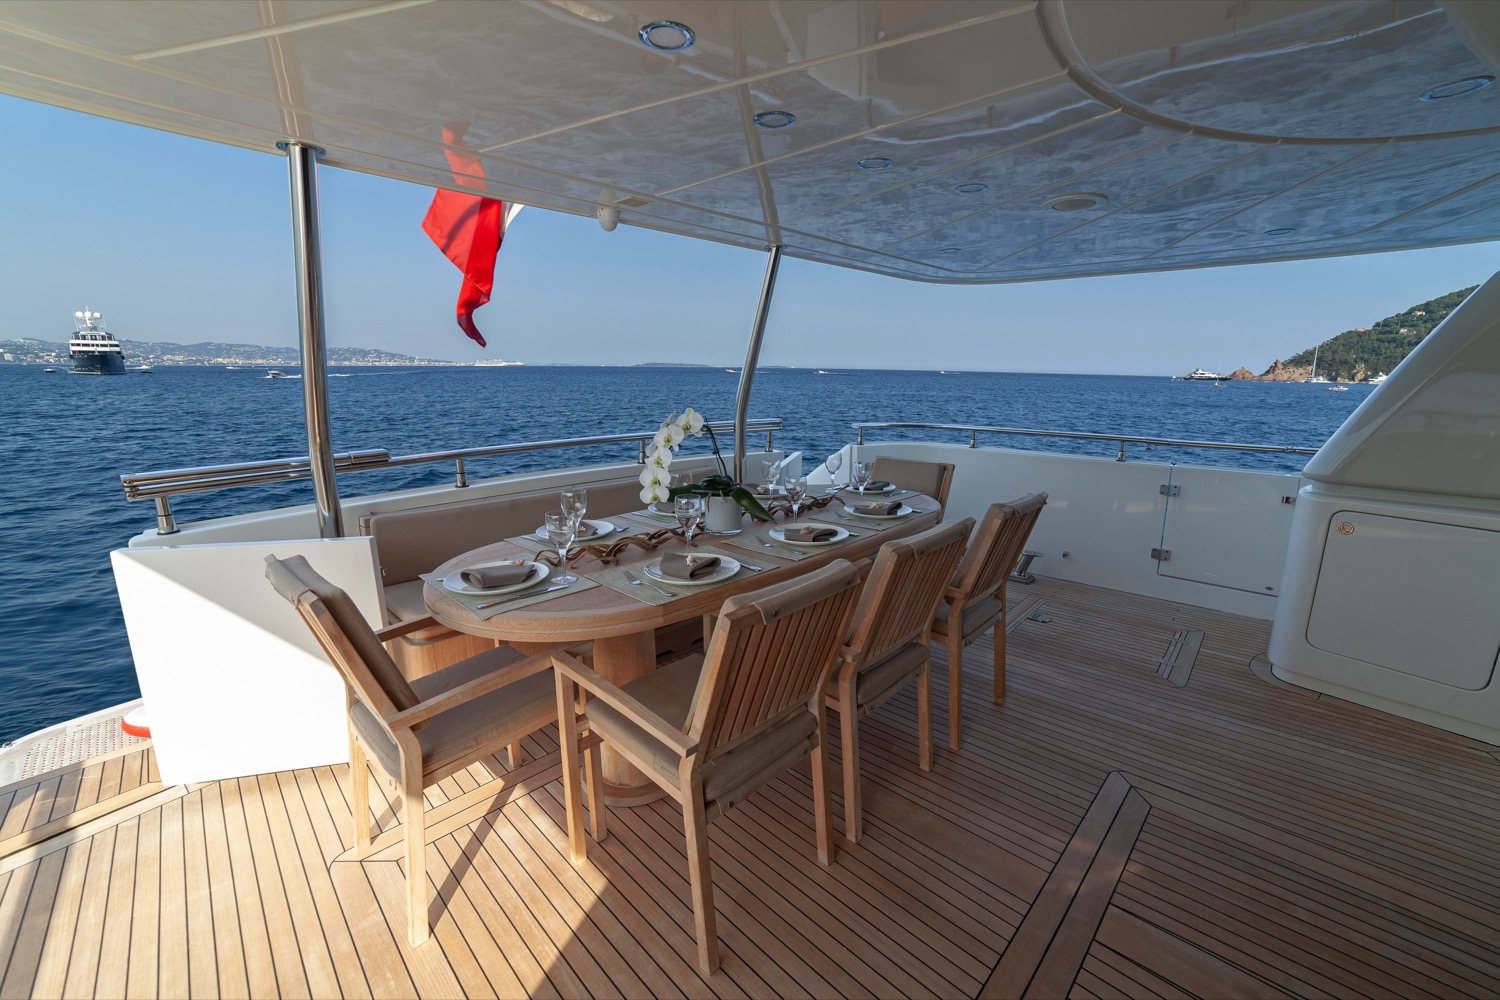 Sanlorenzo SL88 Yacht for sale 55